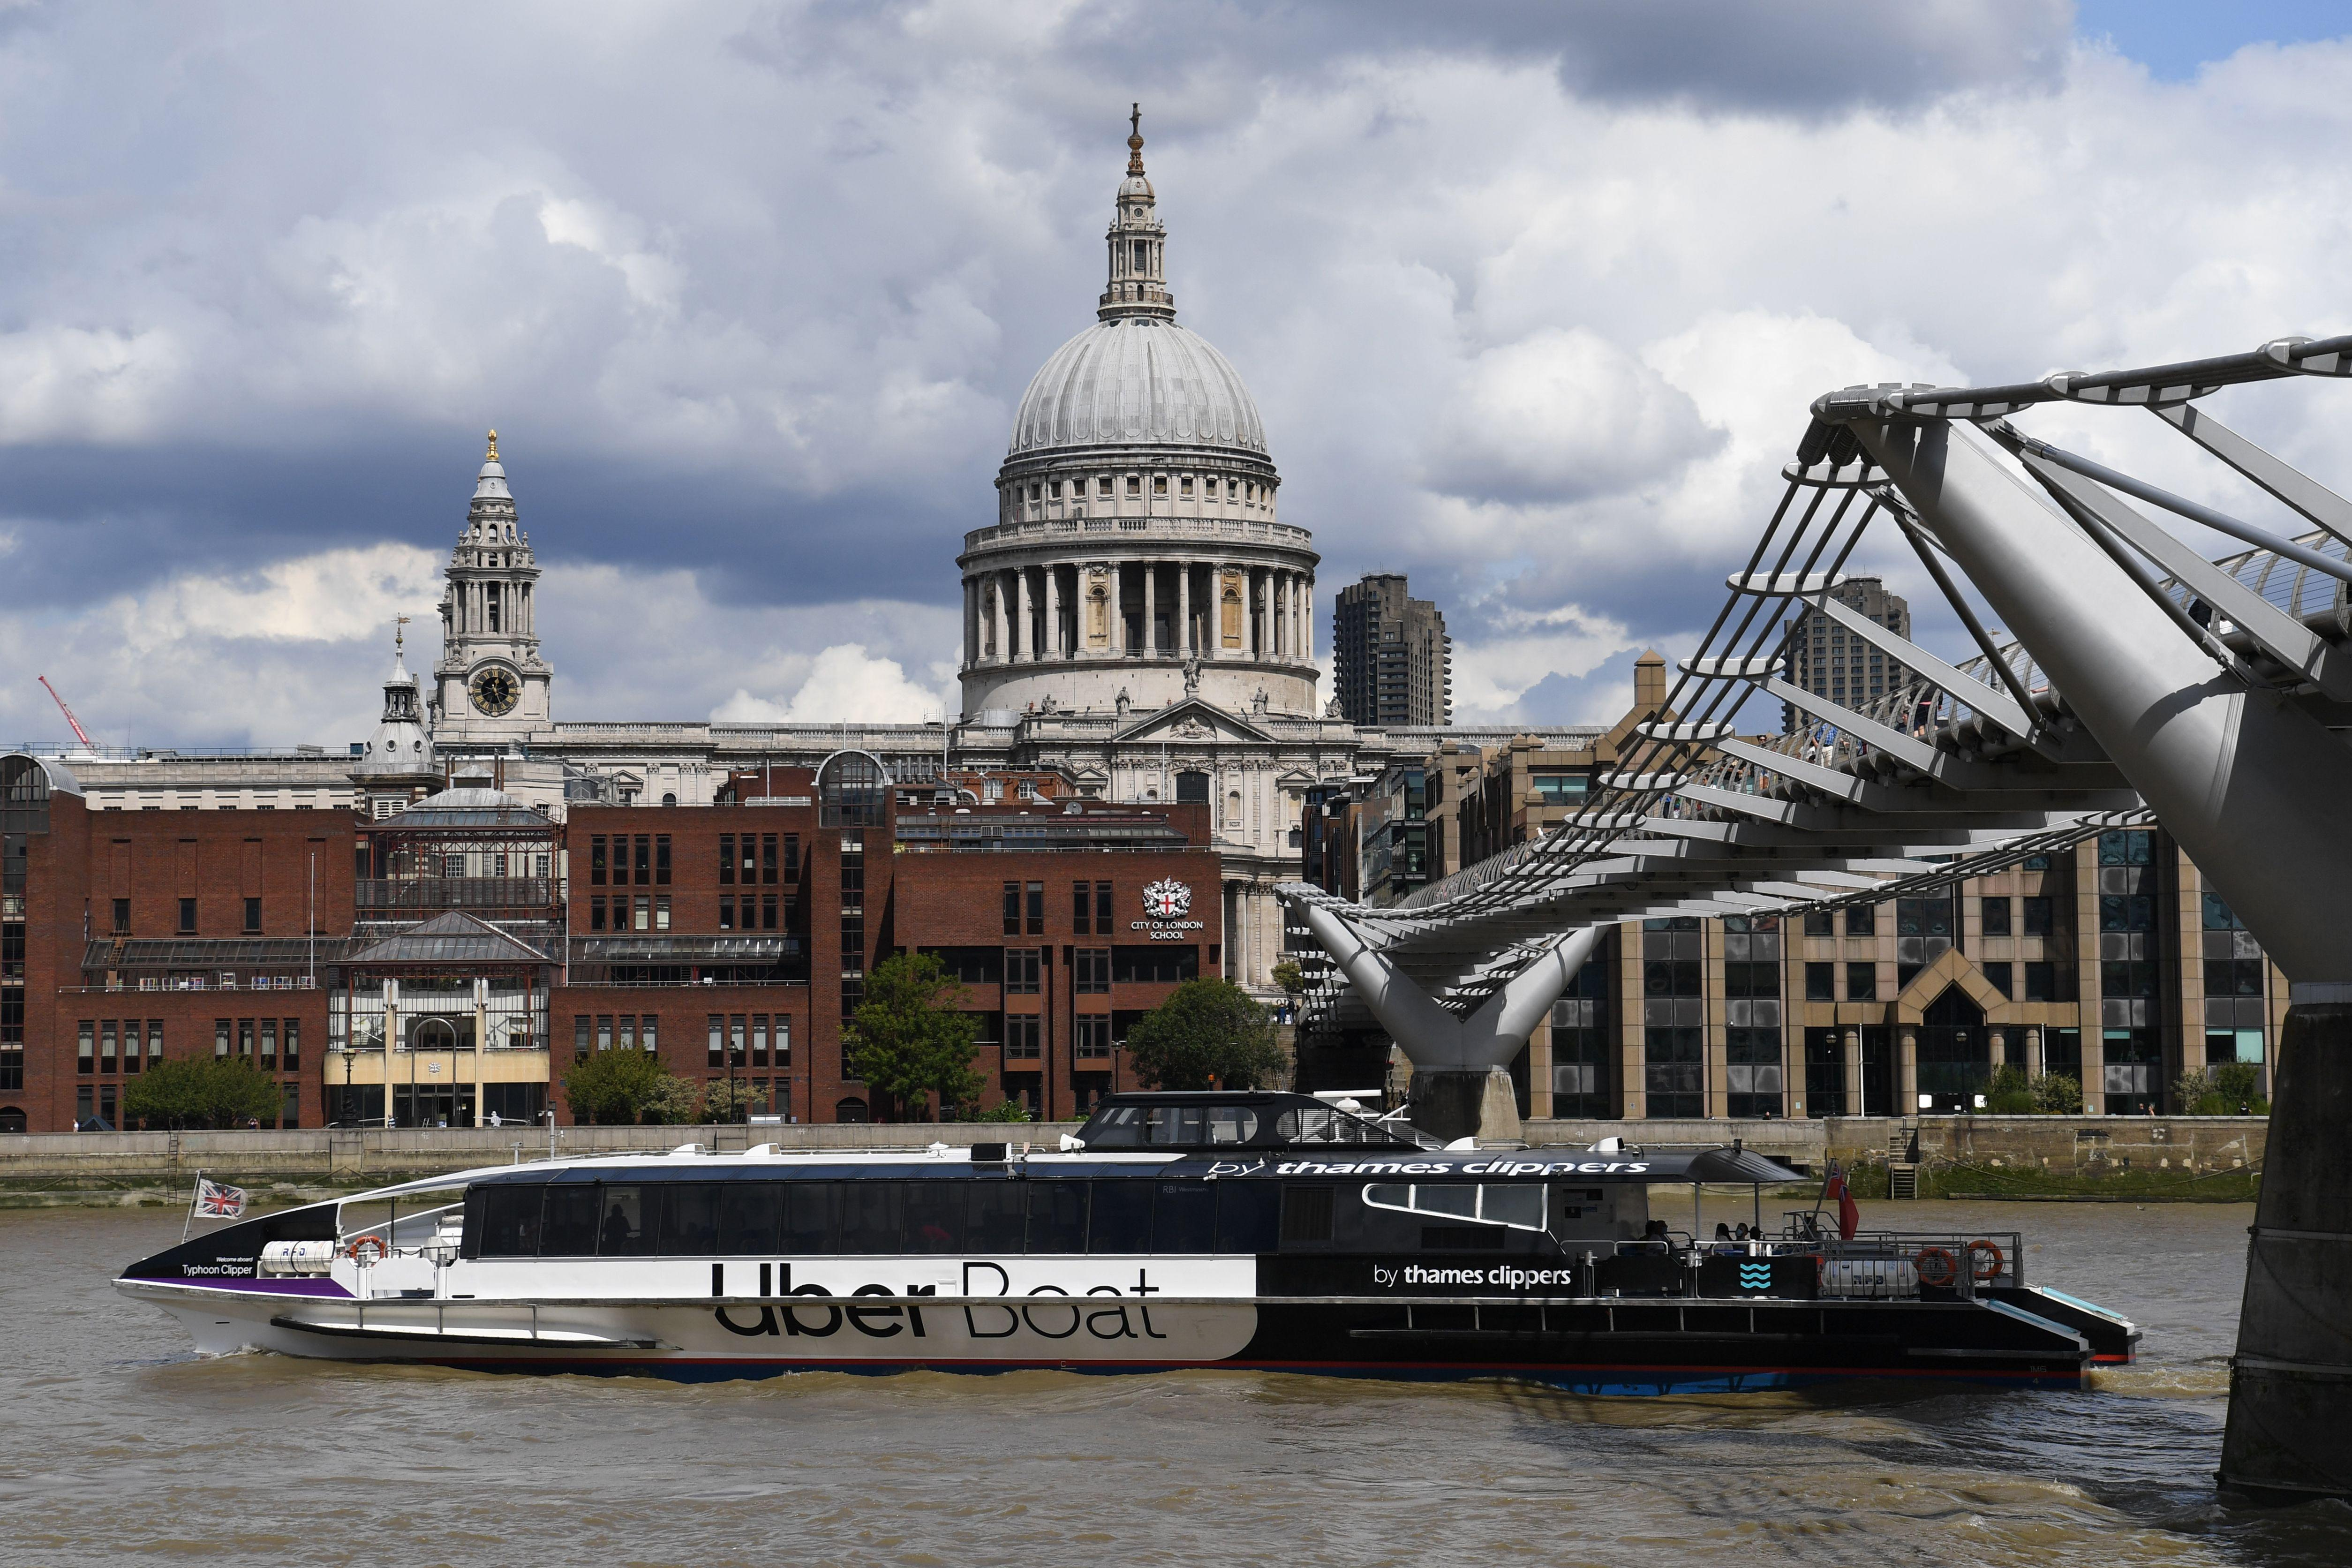 Uber launches London boat service with Thames Clippers